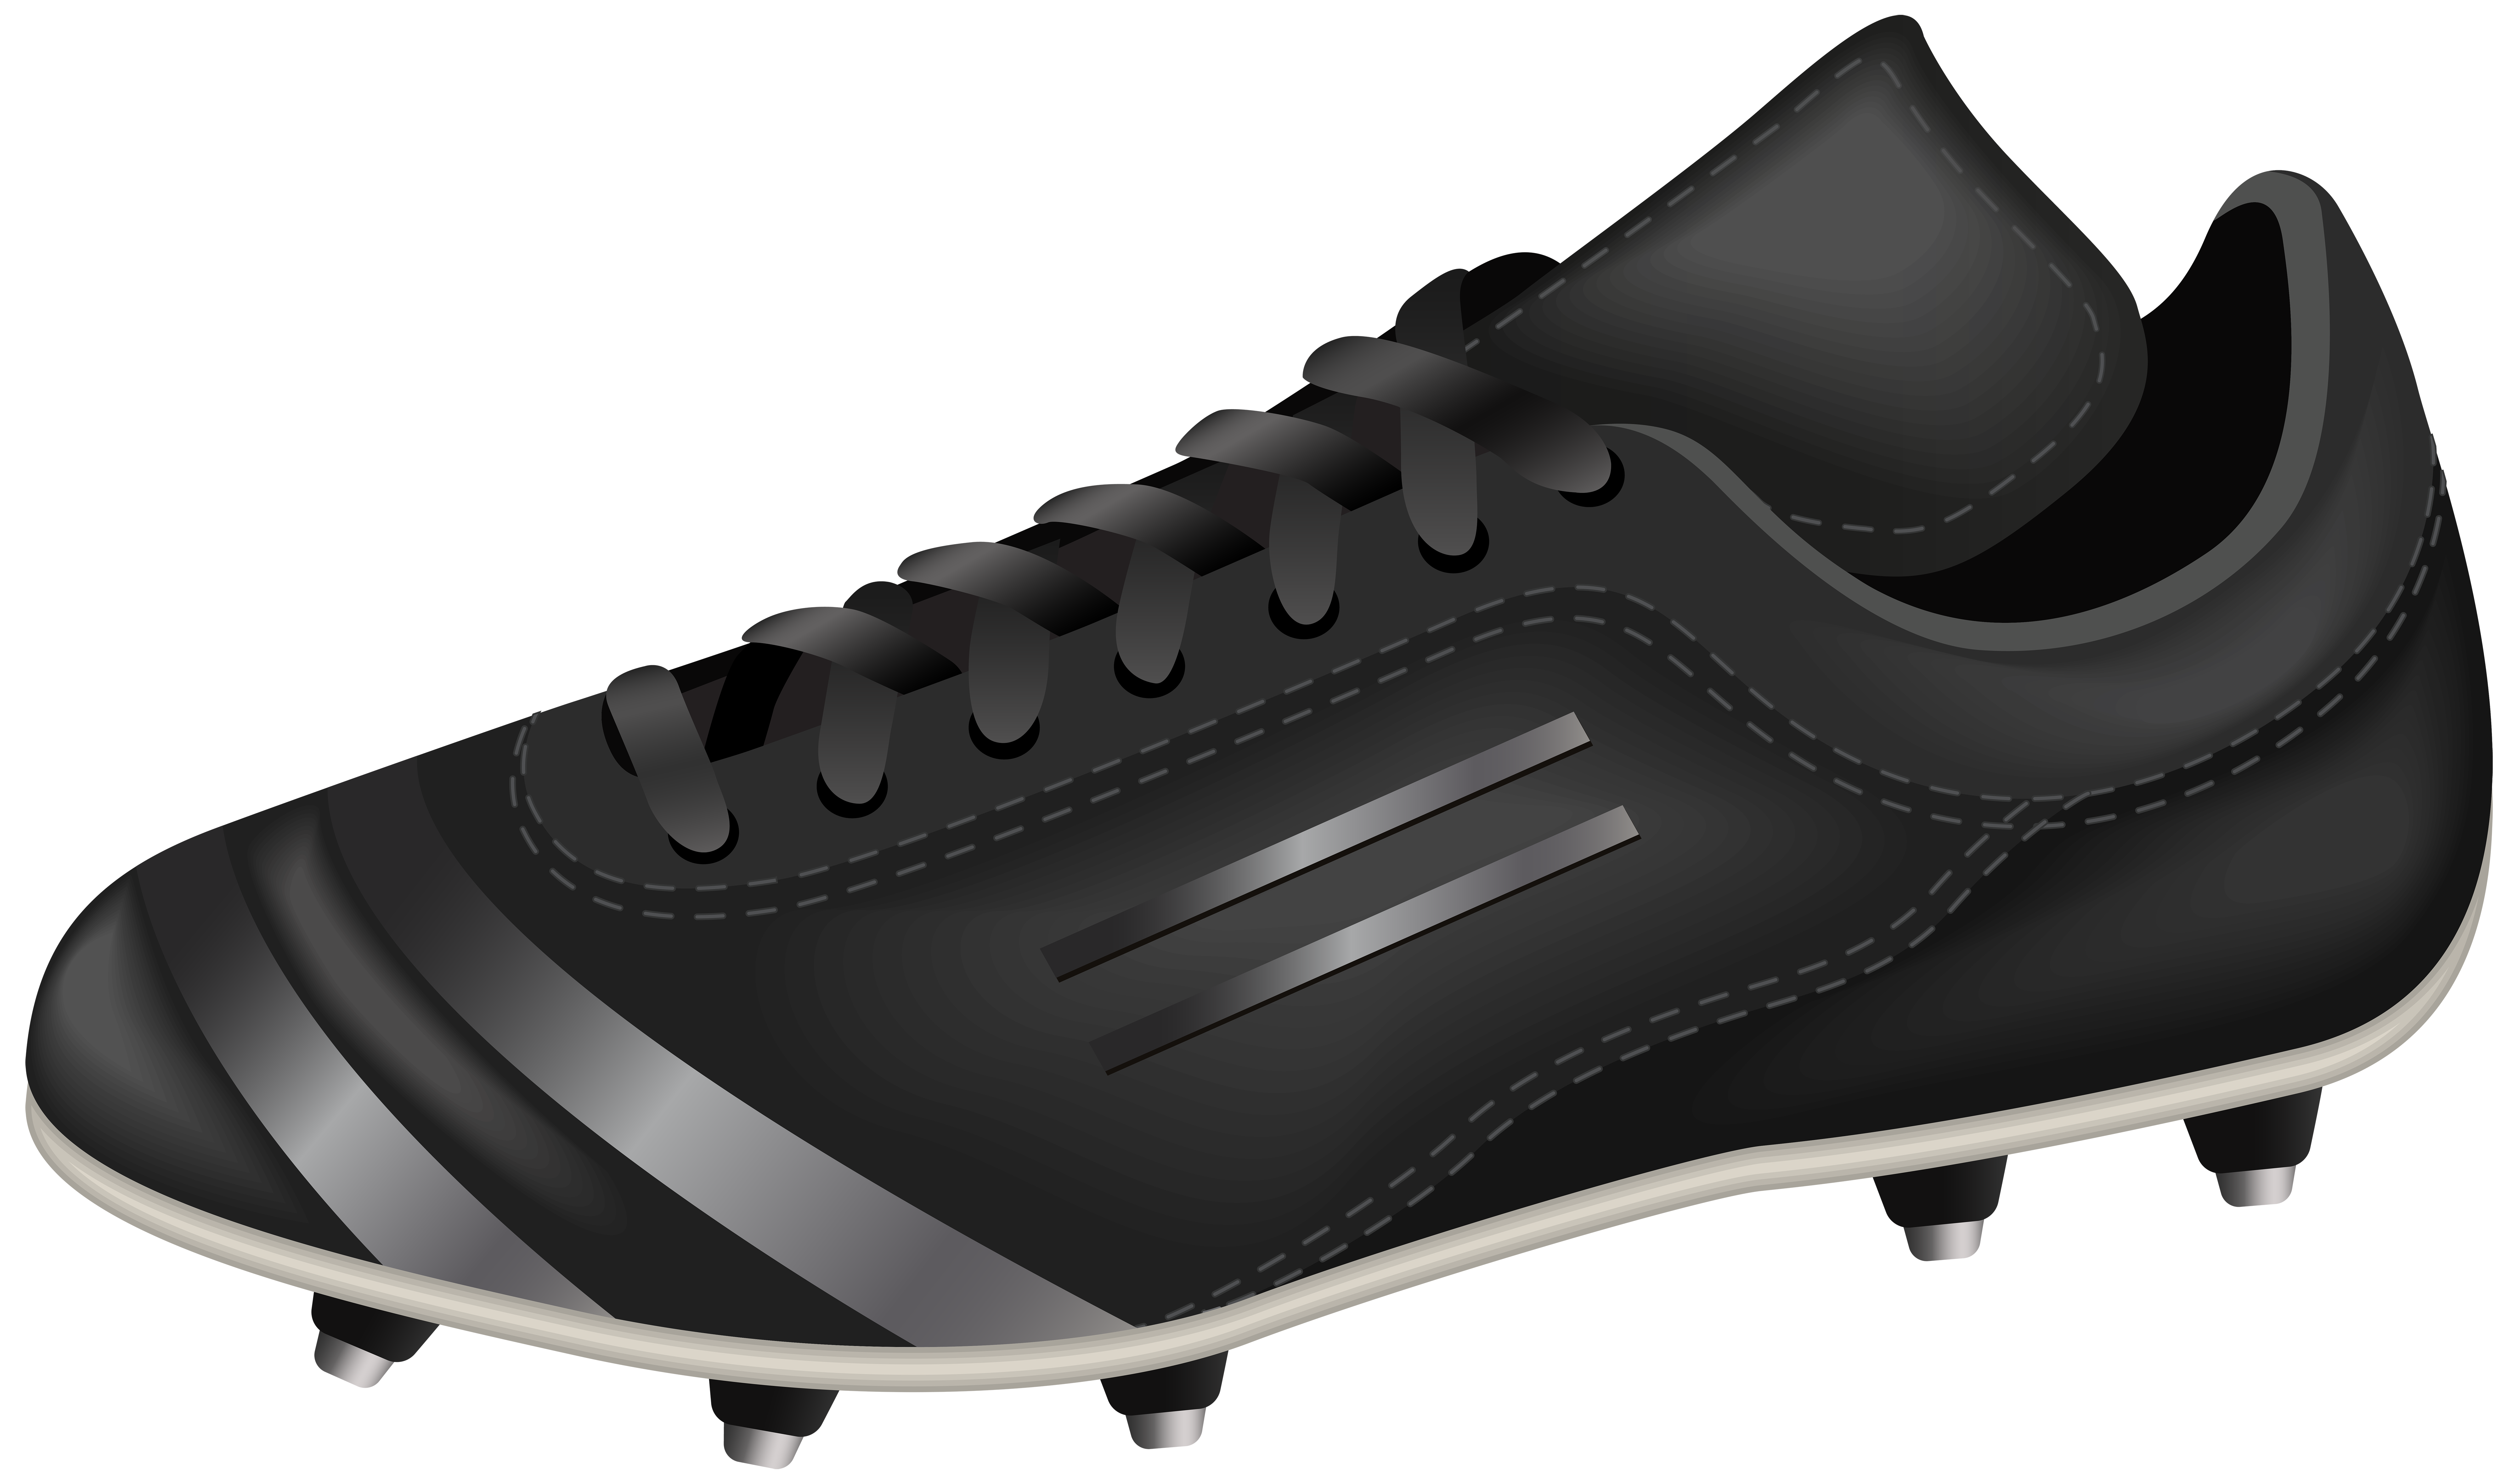 Football boot clipart picture transparent Football Boots PNG Clip Art Image | Gallery Yopriceville - High ... picture transparent